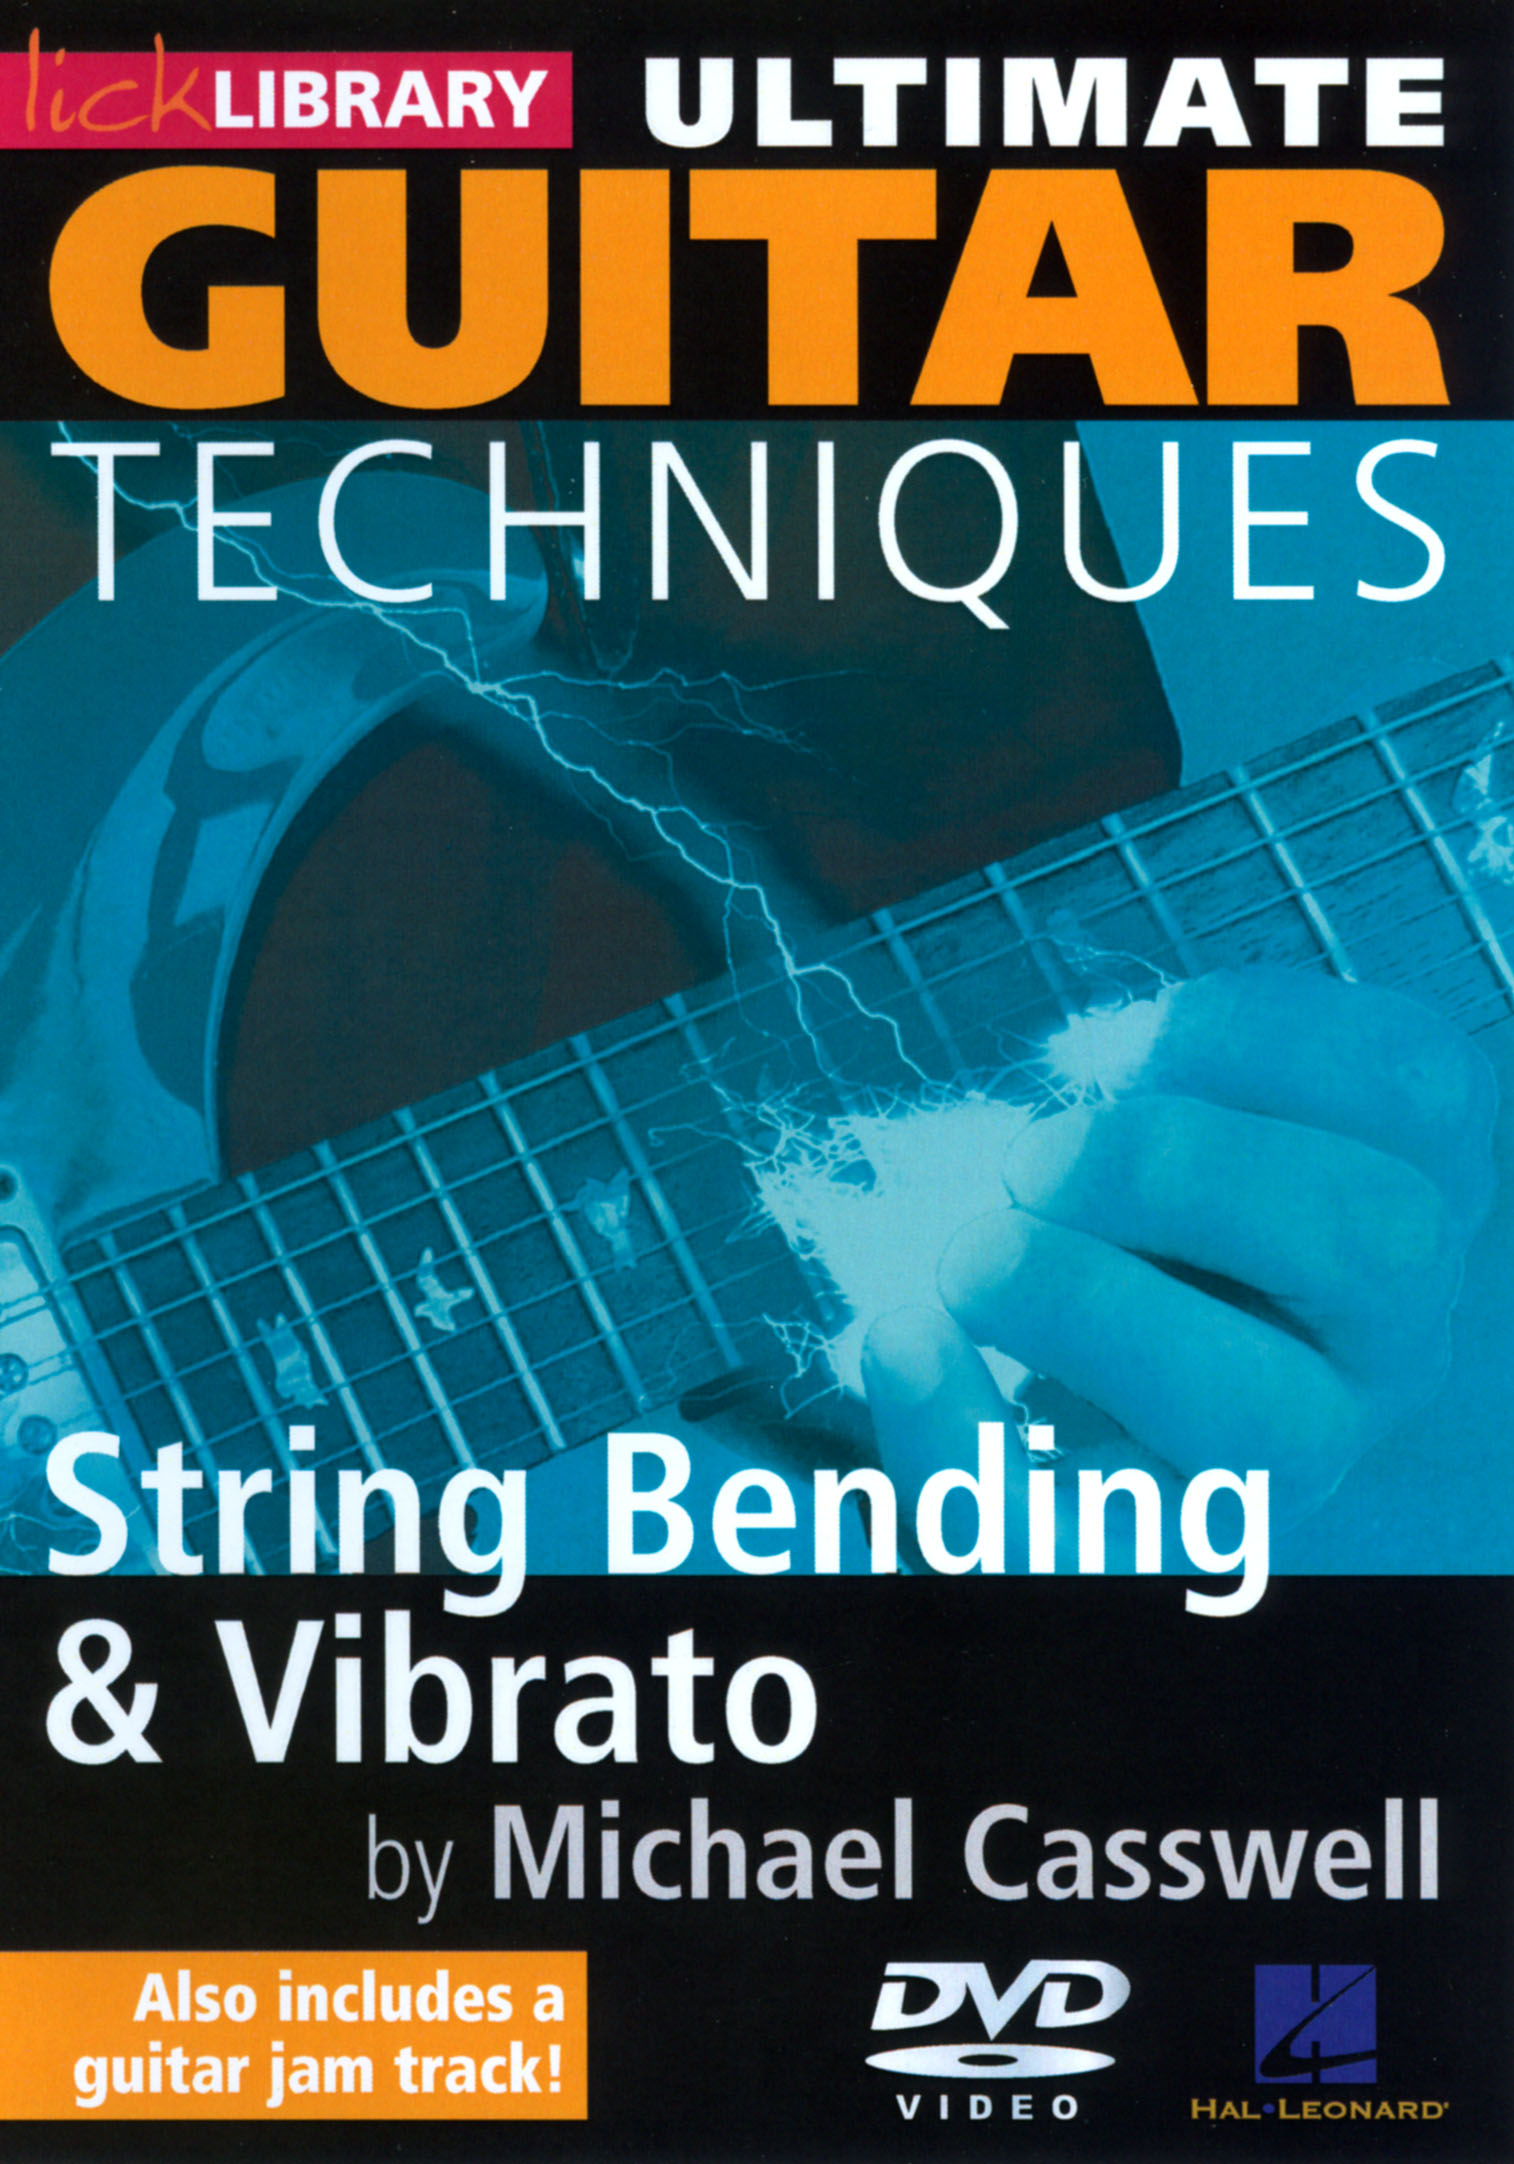 Lick Library: Ultimate Guitar Techniques - String Bending & Vibrato